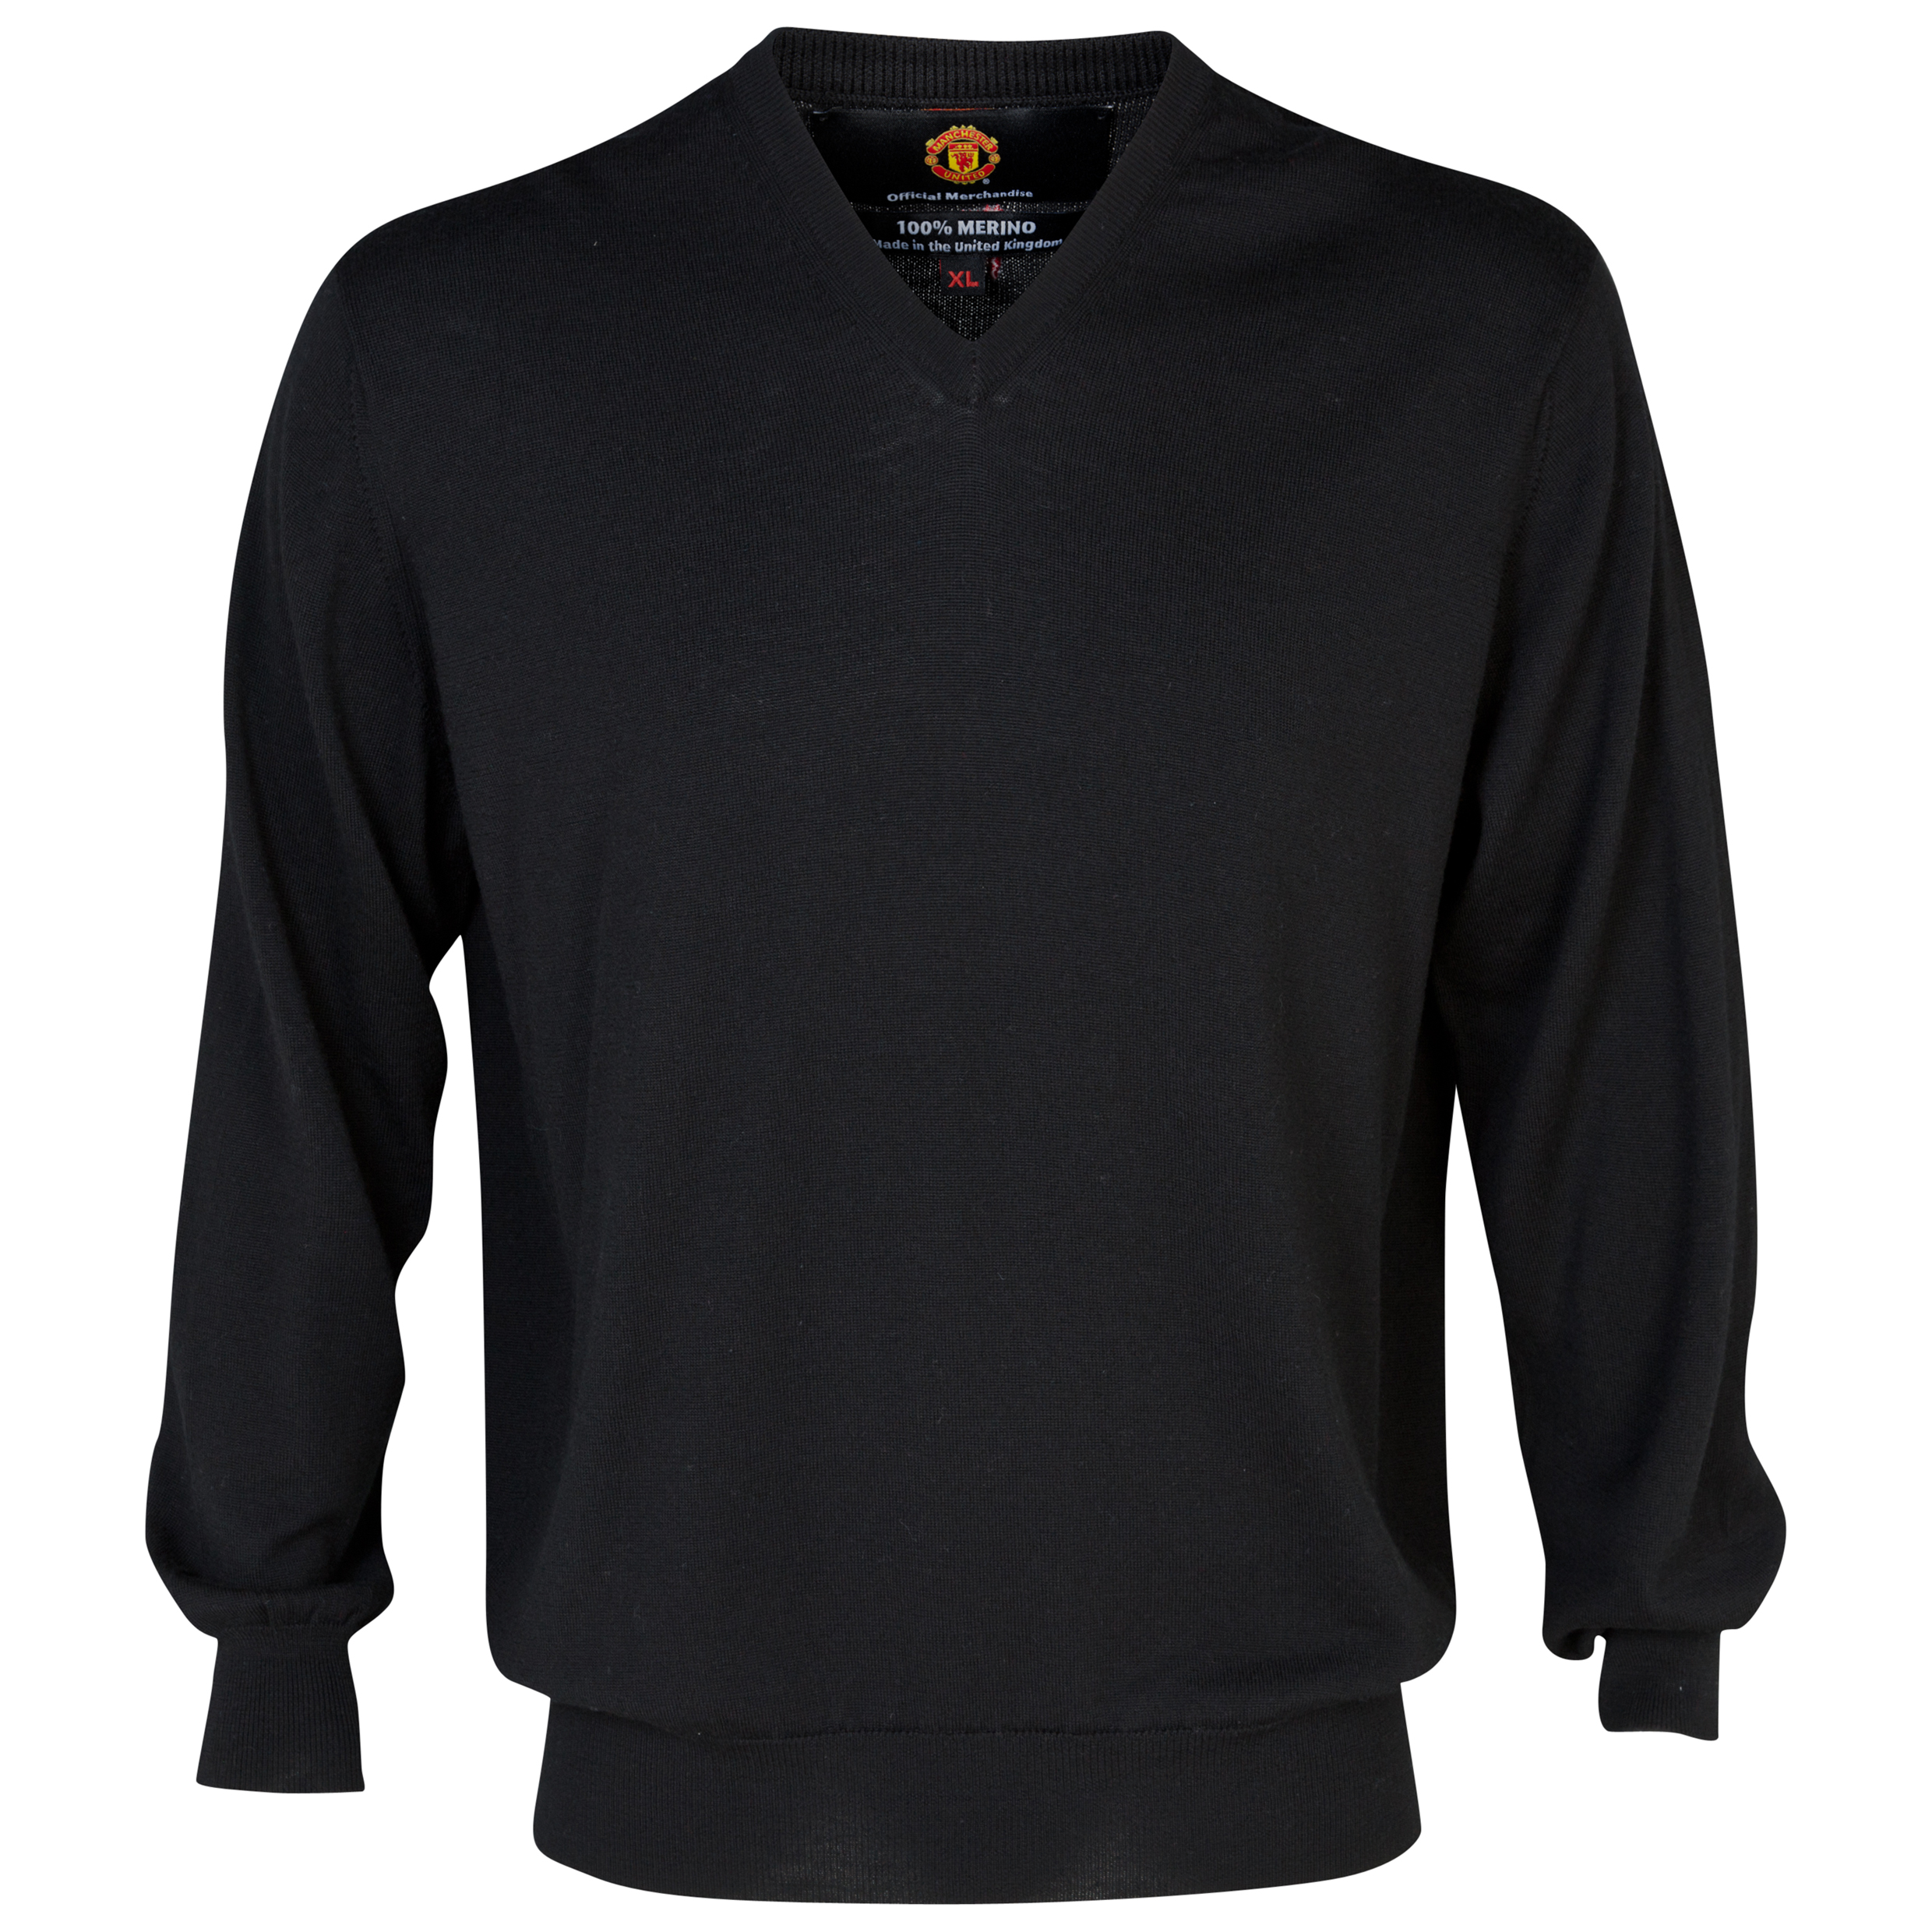 Manchester United Merino V Neck Sweater - Mens Black